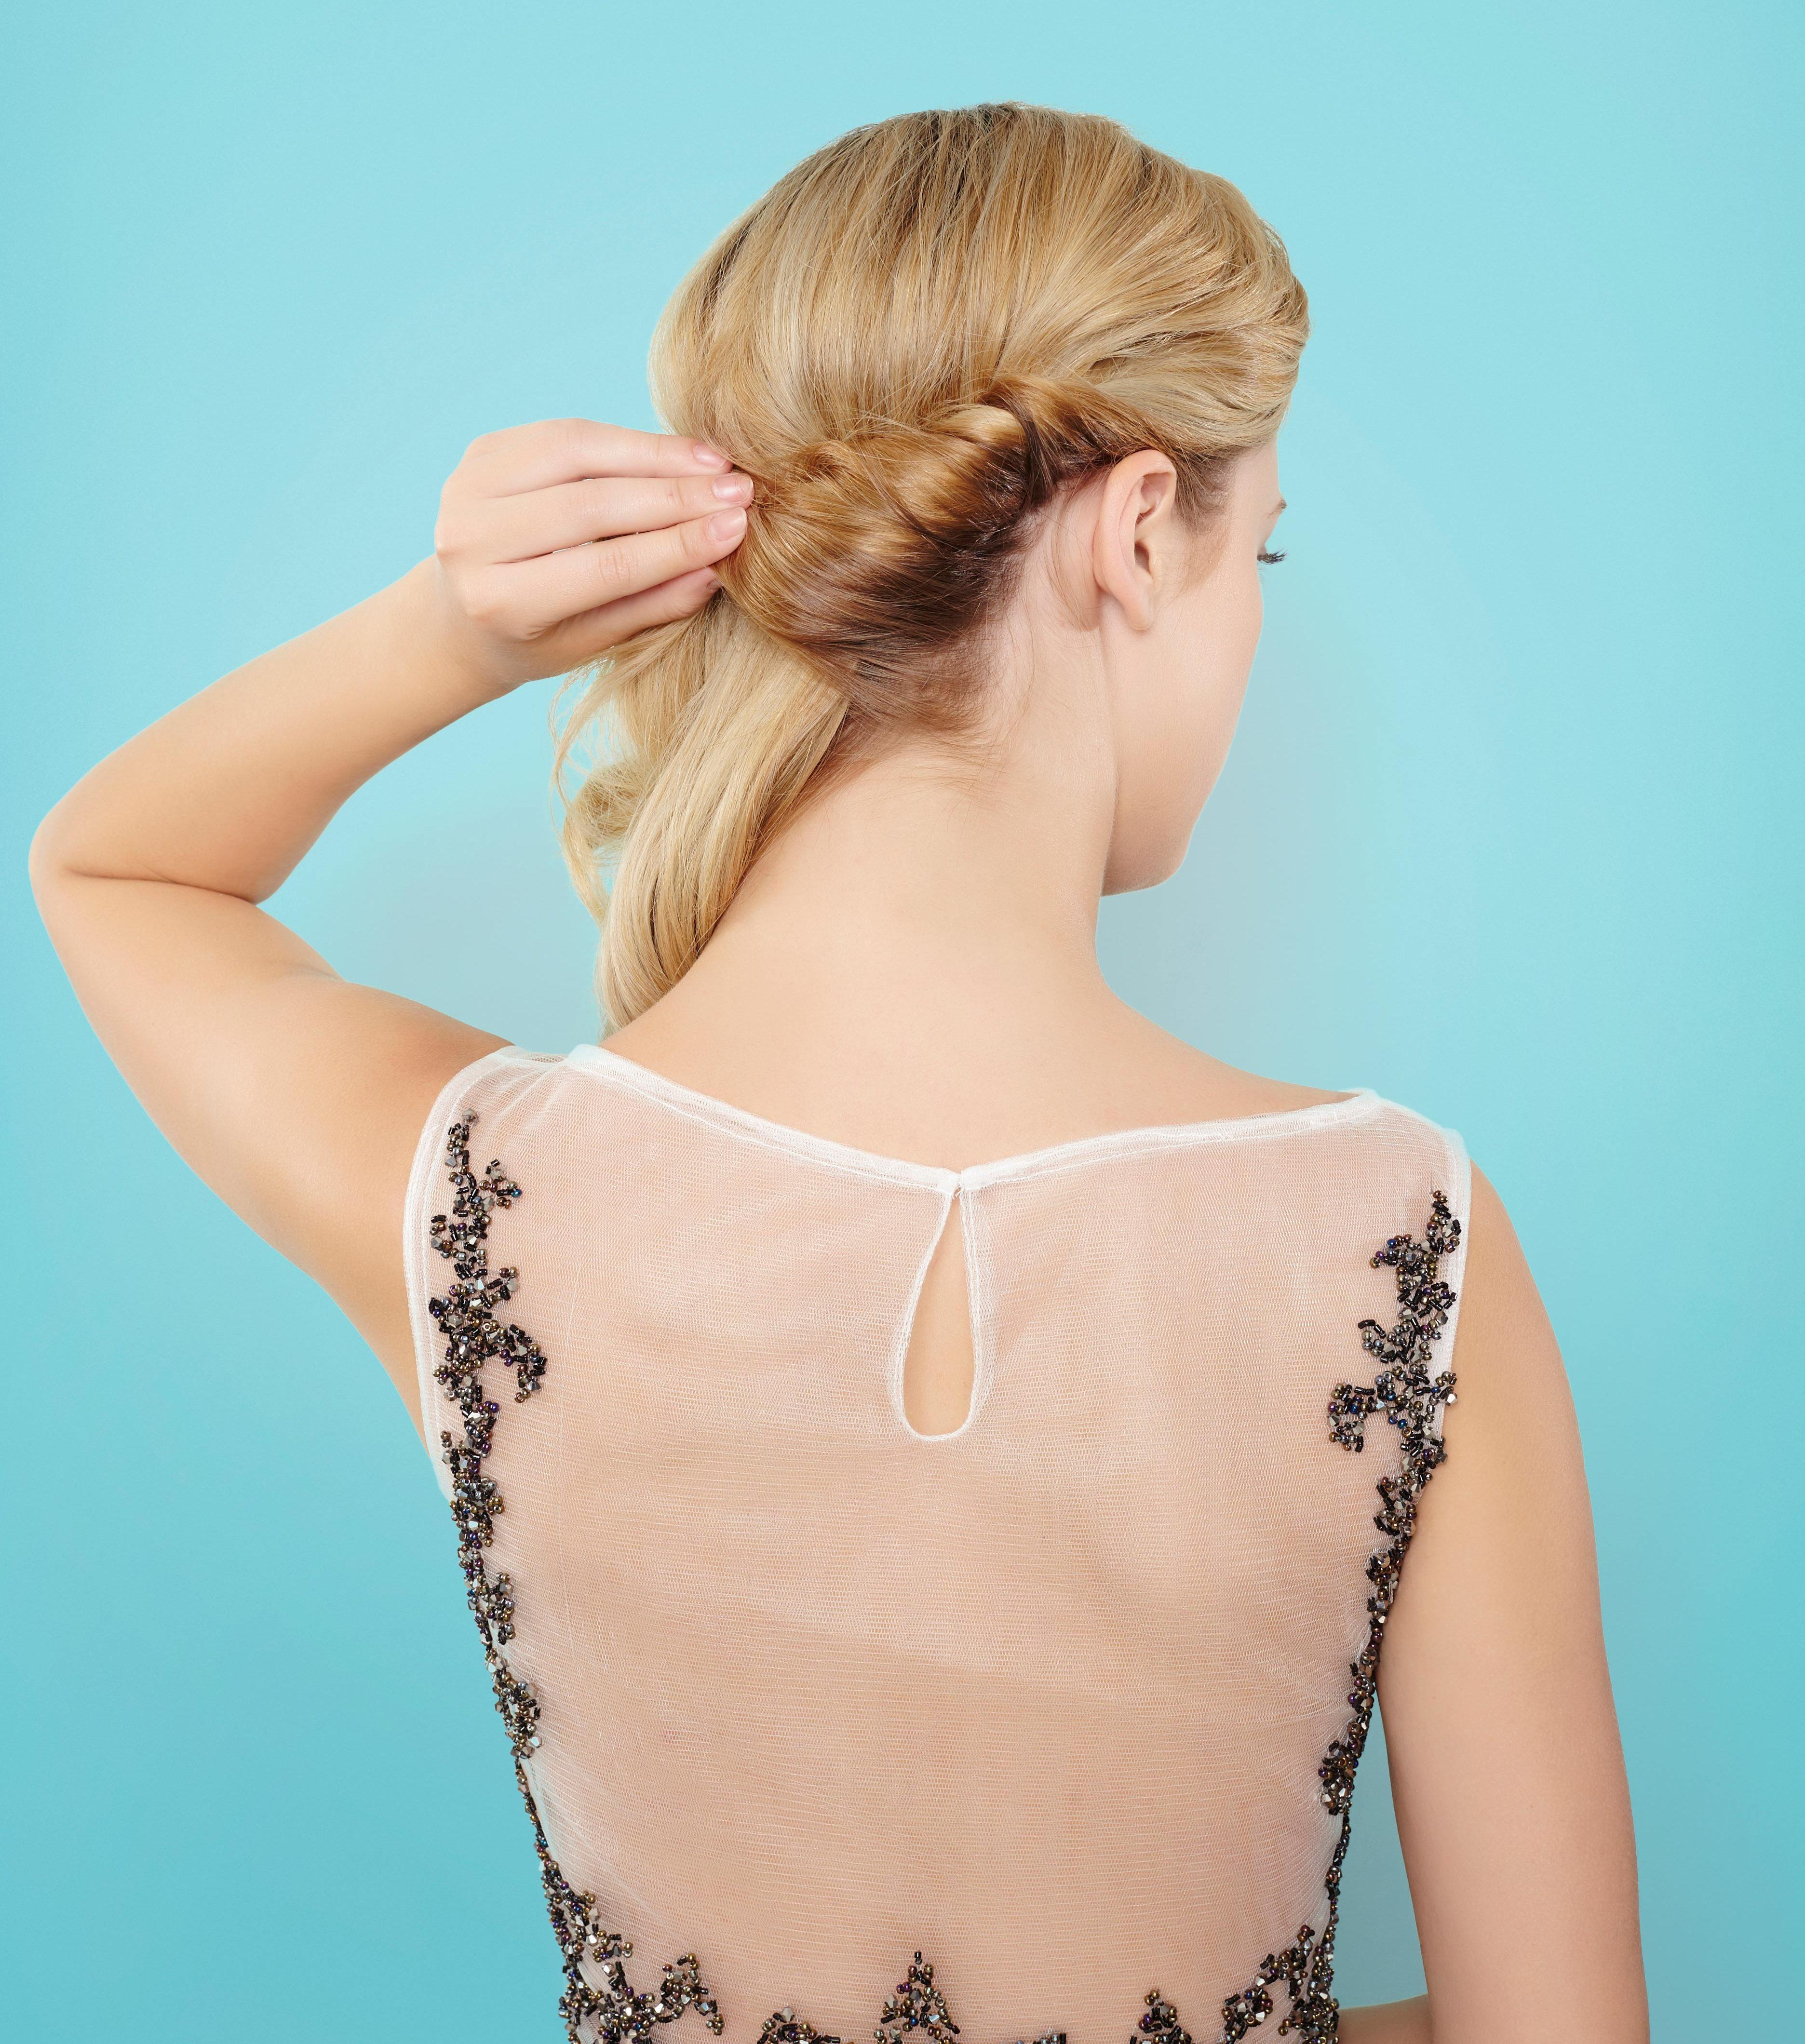 back view of a blonde model twisting a section of her hair into a croissant bun